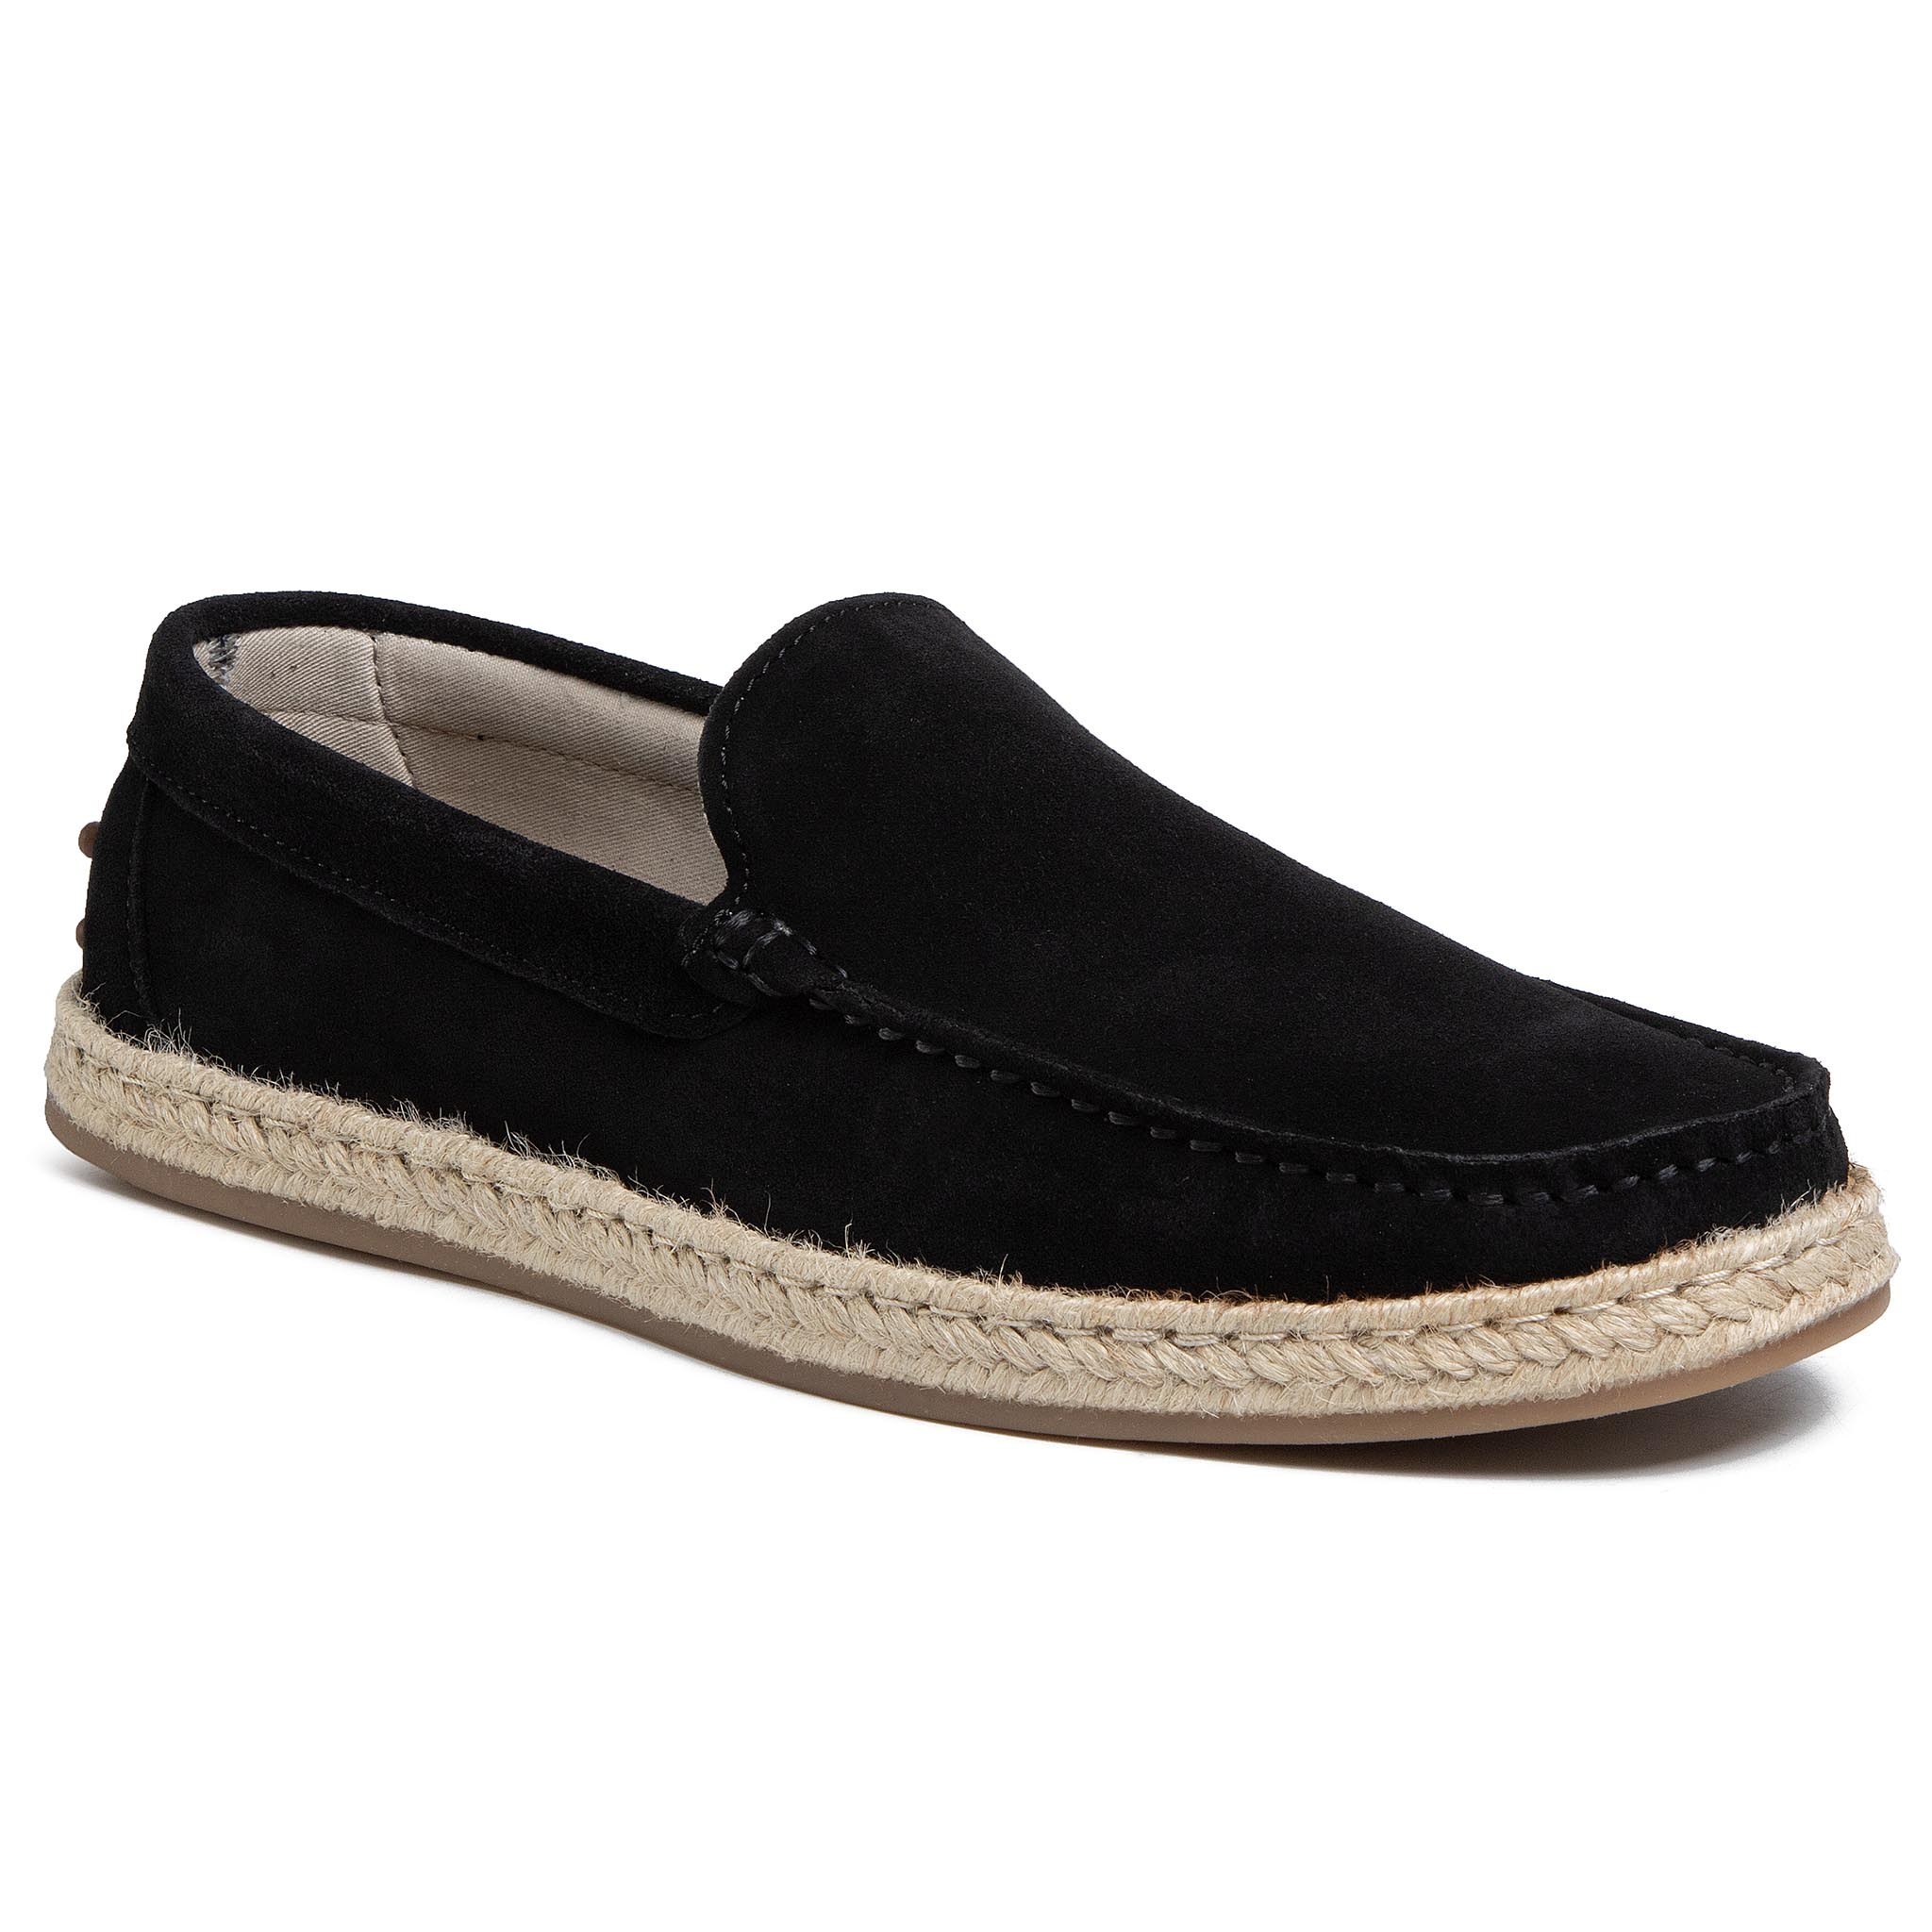 Espadrile Quazi - Qz-64-04-000651 201 imagine